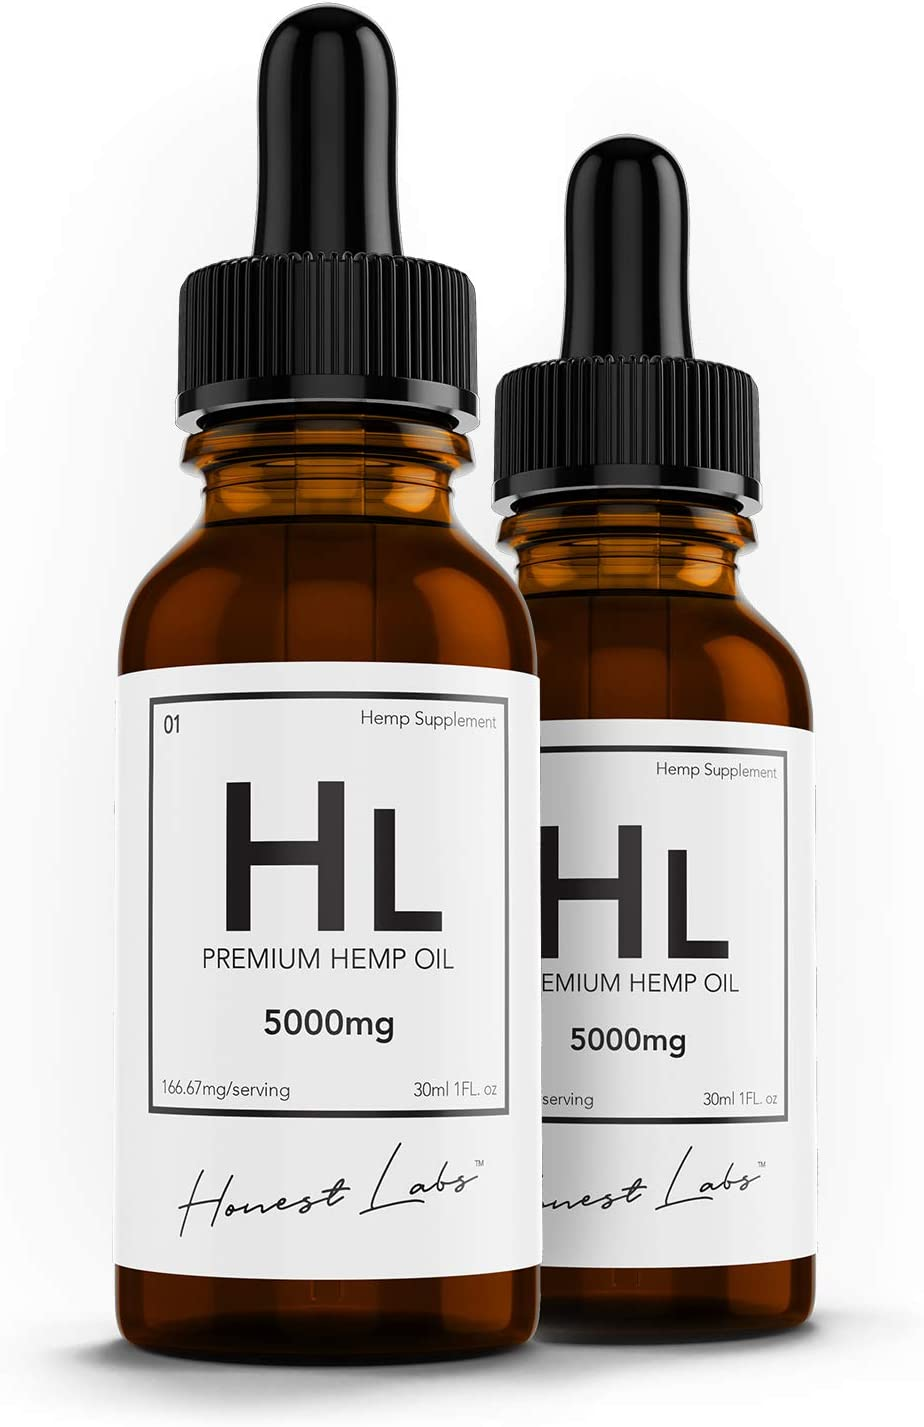 (2 Pack) 5000mg Organic Hemp Oil Pure Extract for Pain, Anxiety and Stress Relief, Sleep, Stress Relief 10,000mg Total, 60-Day Supply - Organic Omega Supplement - Honest Labs Hemp